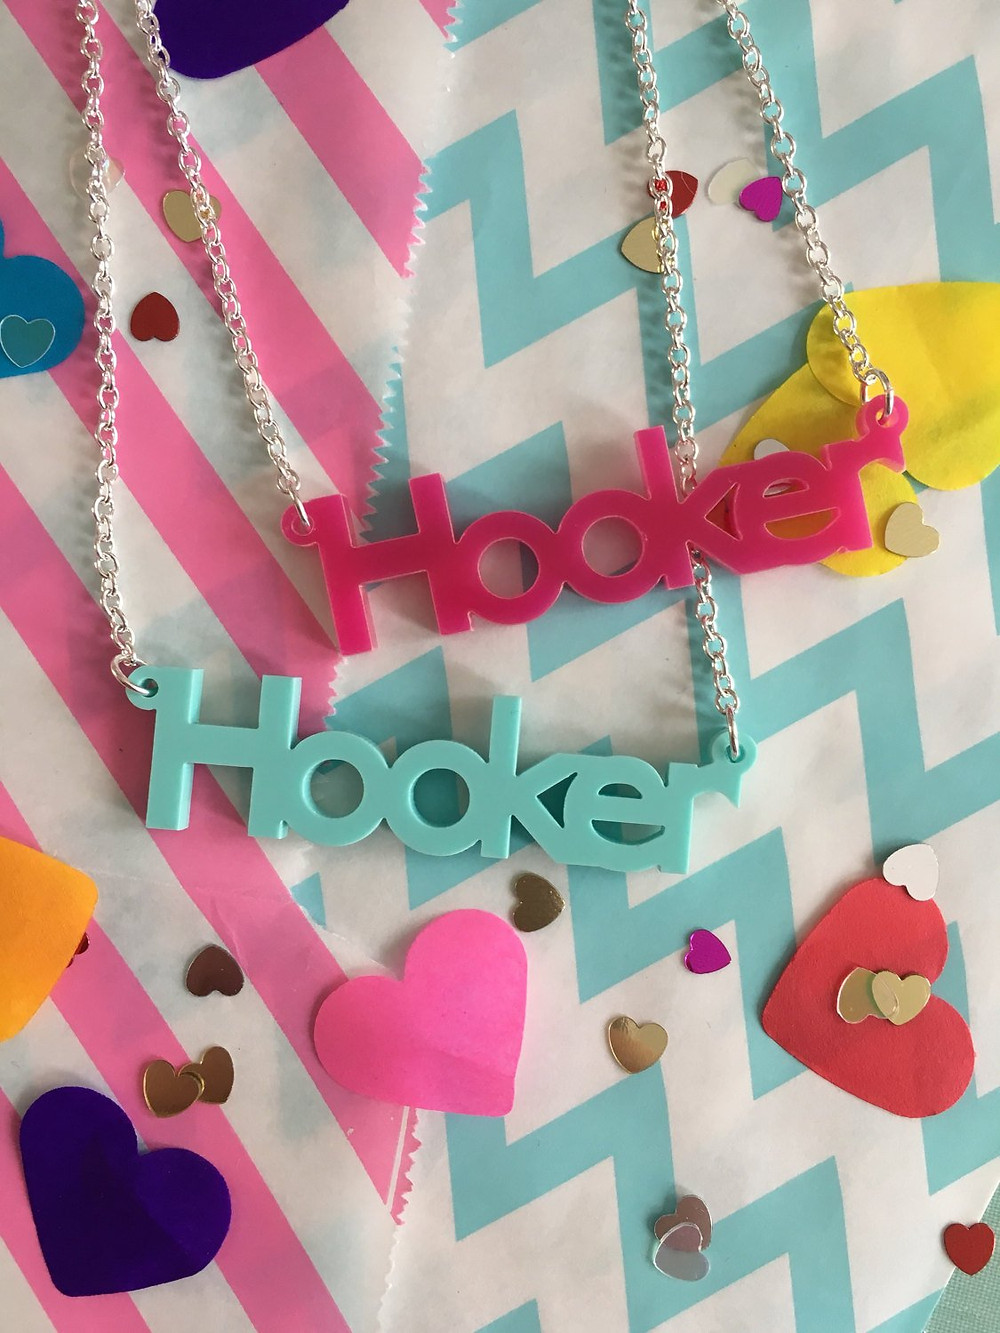 Acrylic hooker crochet necklaces by @lanaboushop